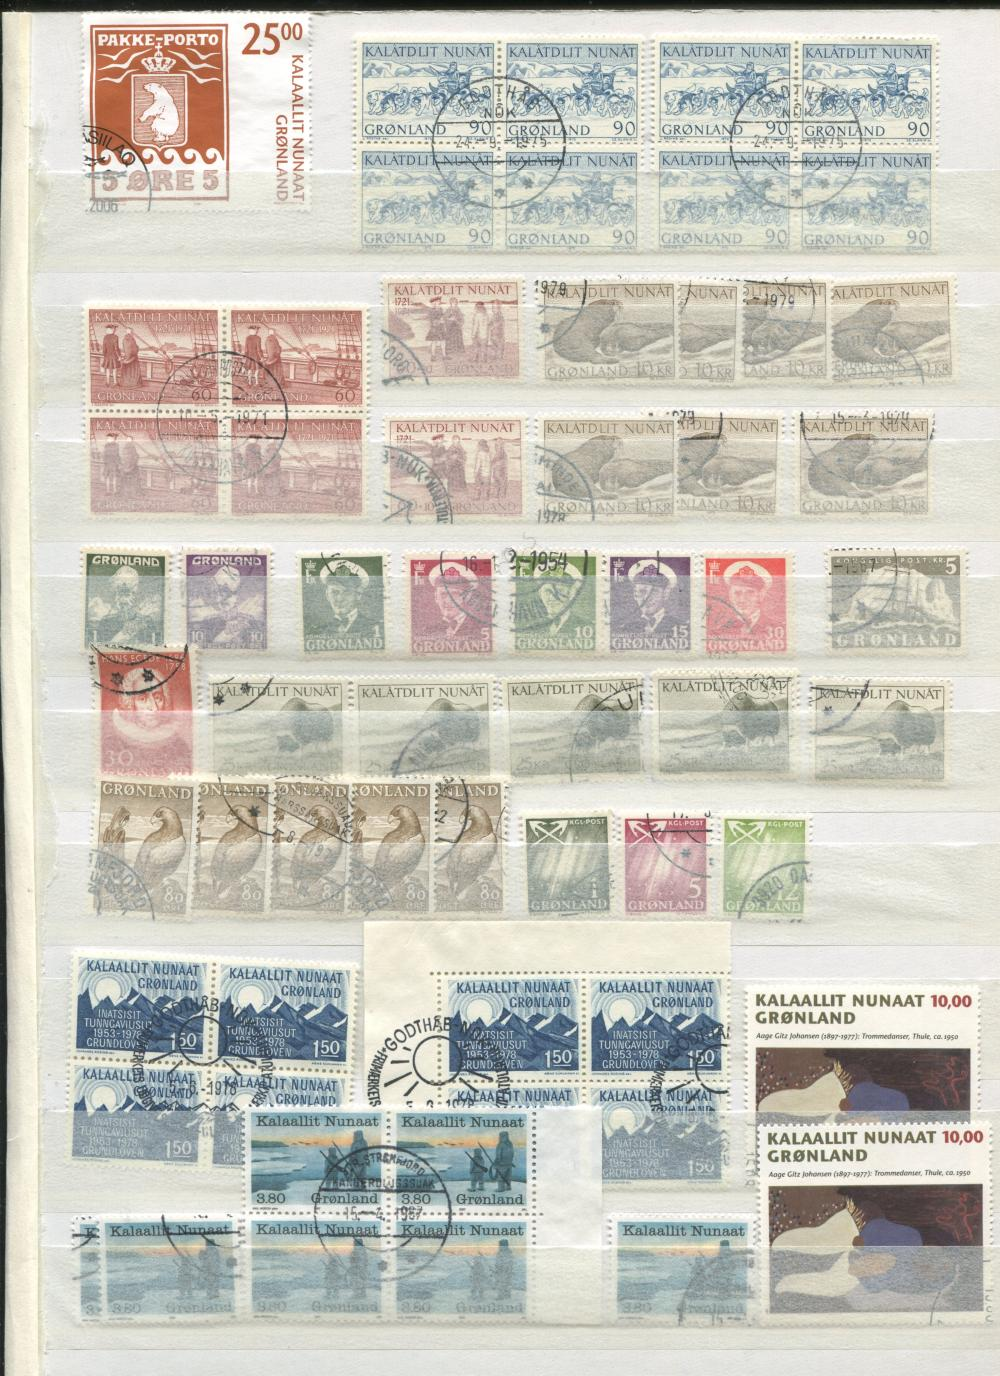 Greenland Singles & Blocks Stamp Collection